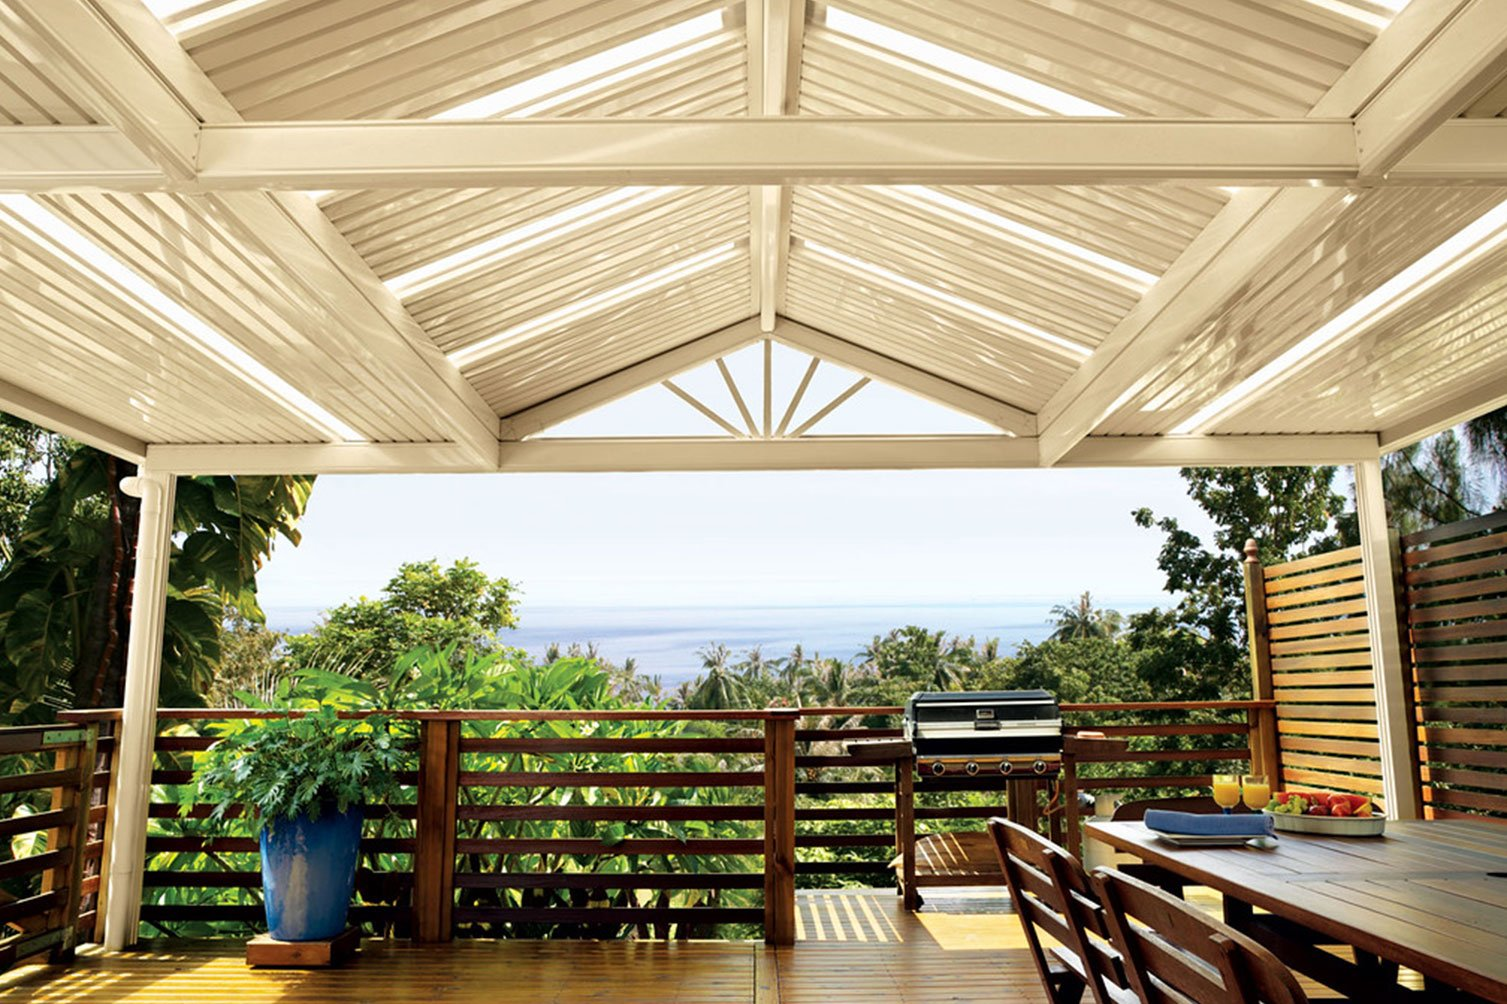 Wonderful roof patio in Byron Bay facing an excellent view of nature